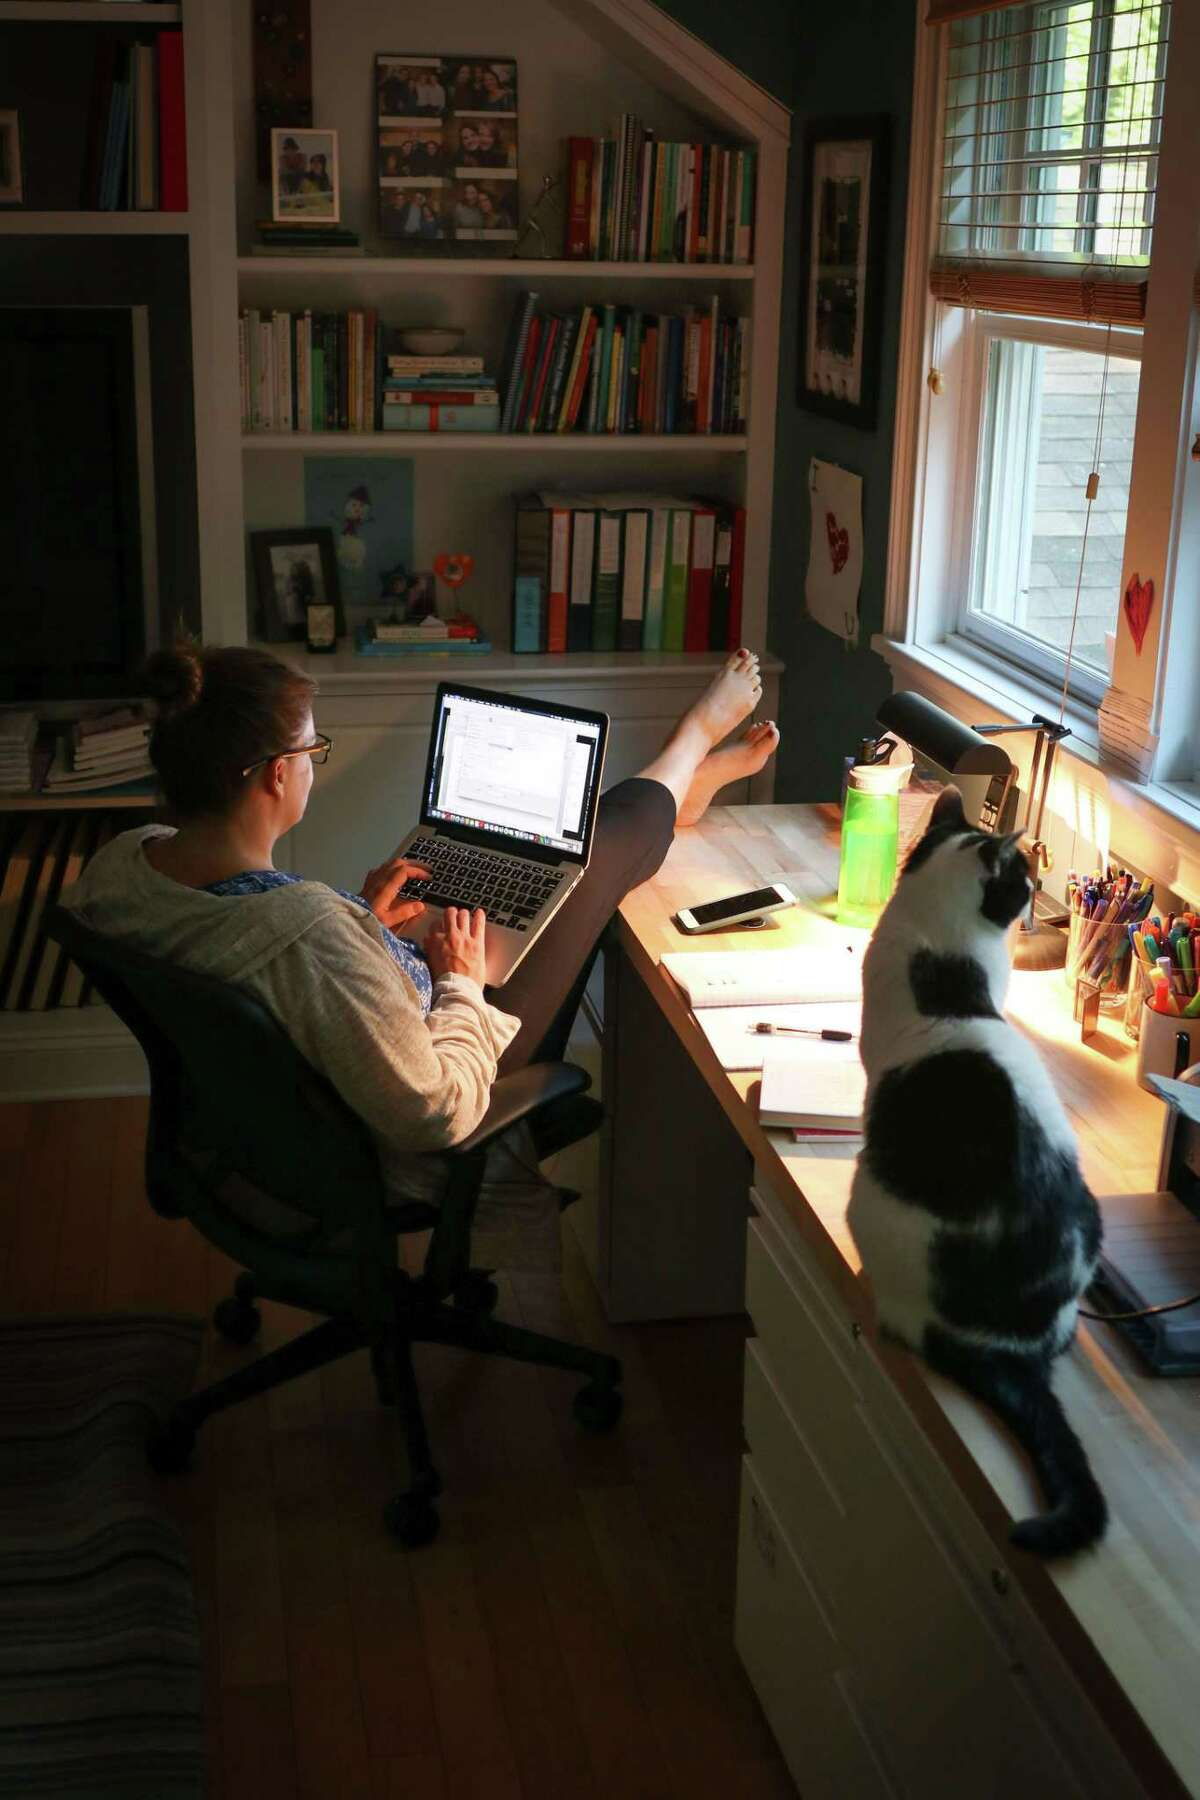 Suzanne Farrell Smith is working on her third book at her home in Wilton.